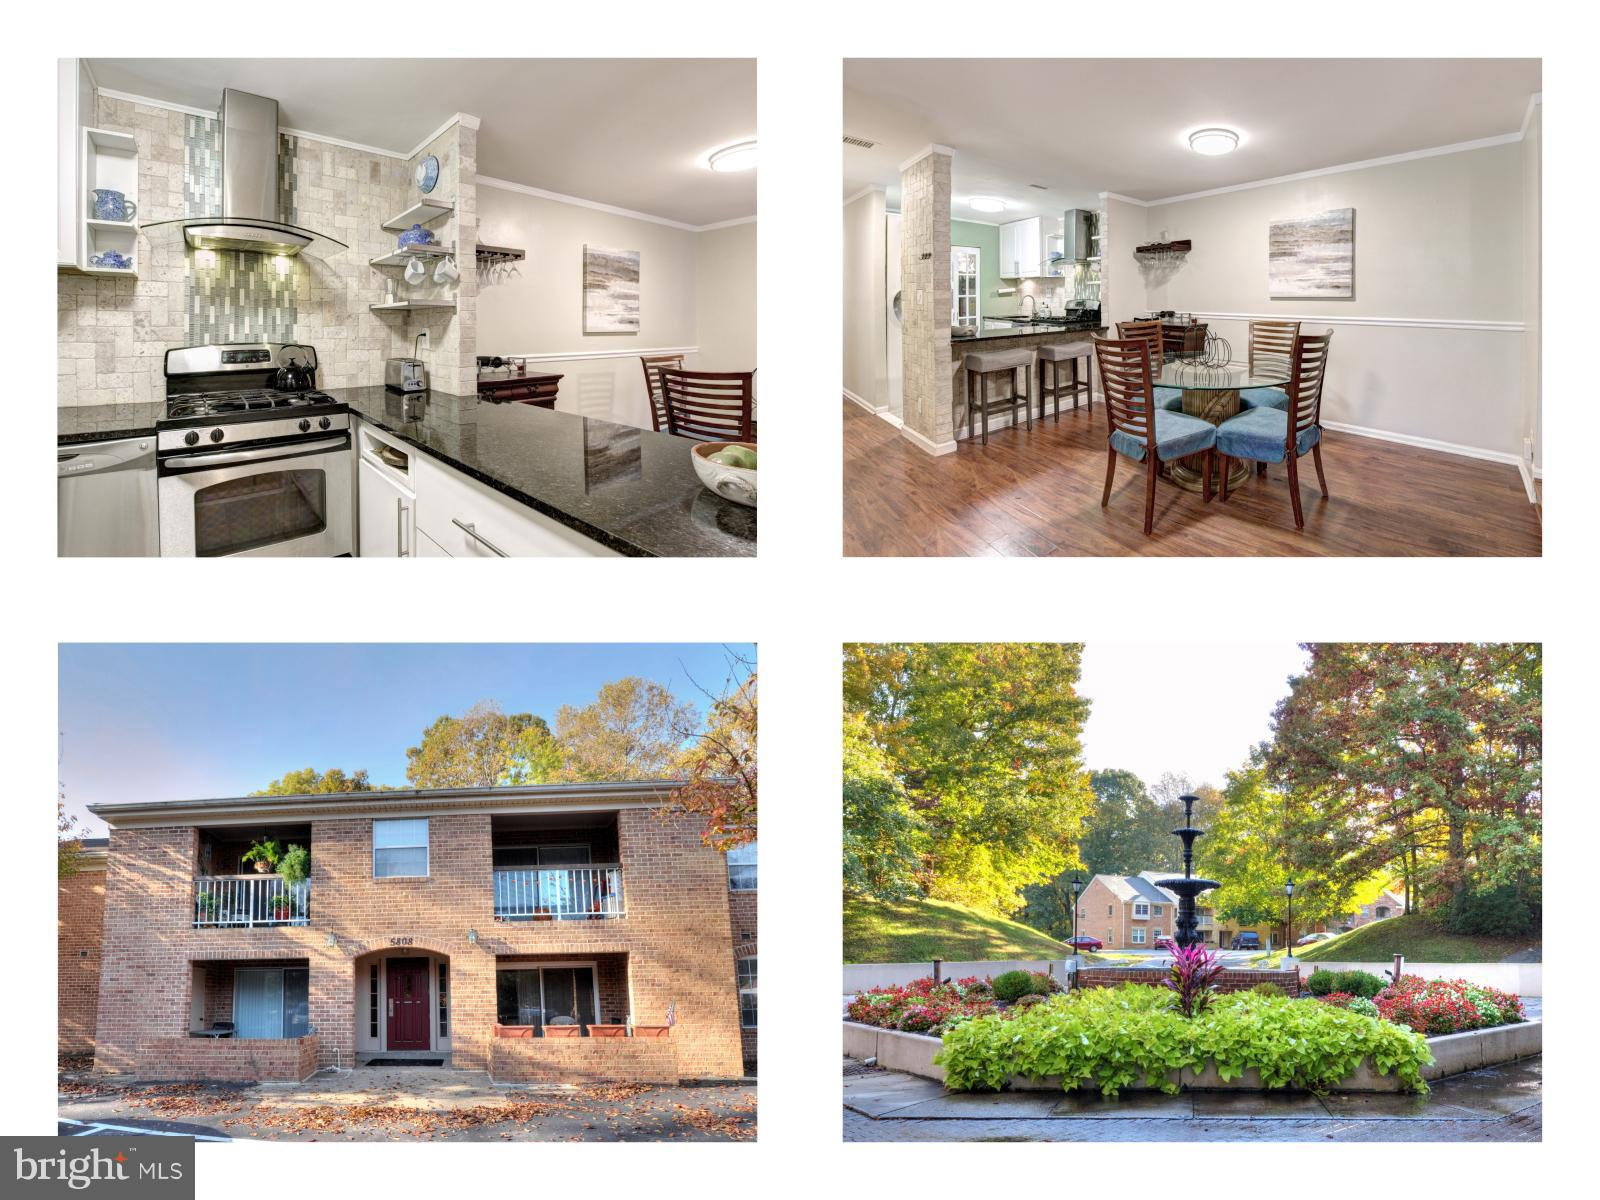 Cozy 3b 2ba corner unit in sought after Robinson District! Best Cove Landing Kitchen you will find w/ SS appliances, designer back splash tile & spacious pantry. Enjoy your morning coffee on the balcony with a view of the neighborhood fountain. Washer dryer in unit, and large storage unit on lower level! Plenty of parking incl reserved spot.  Mins to Lake Barton, Burke Lake, Fairfax Co Pkwy & VRE!